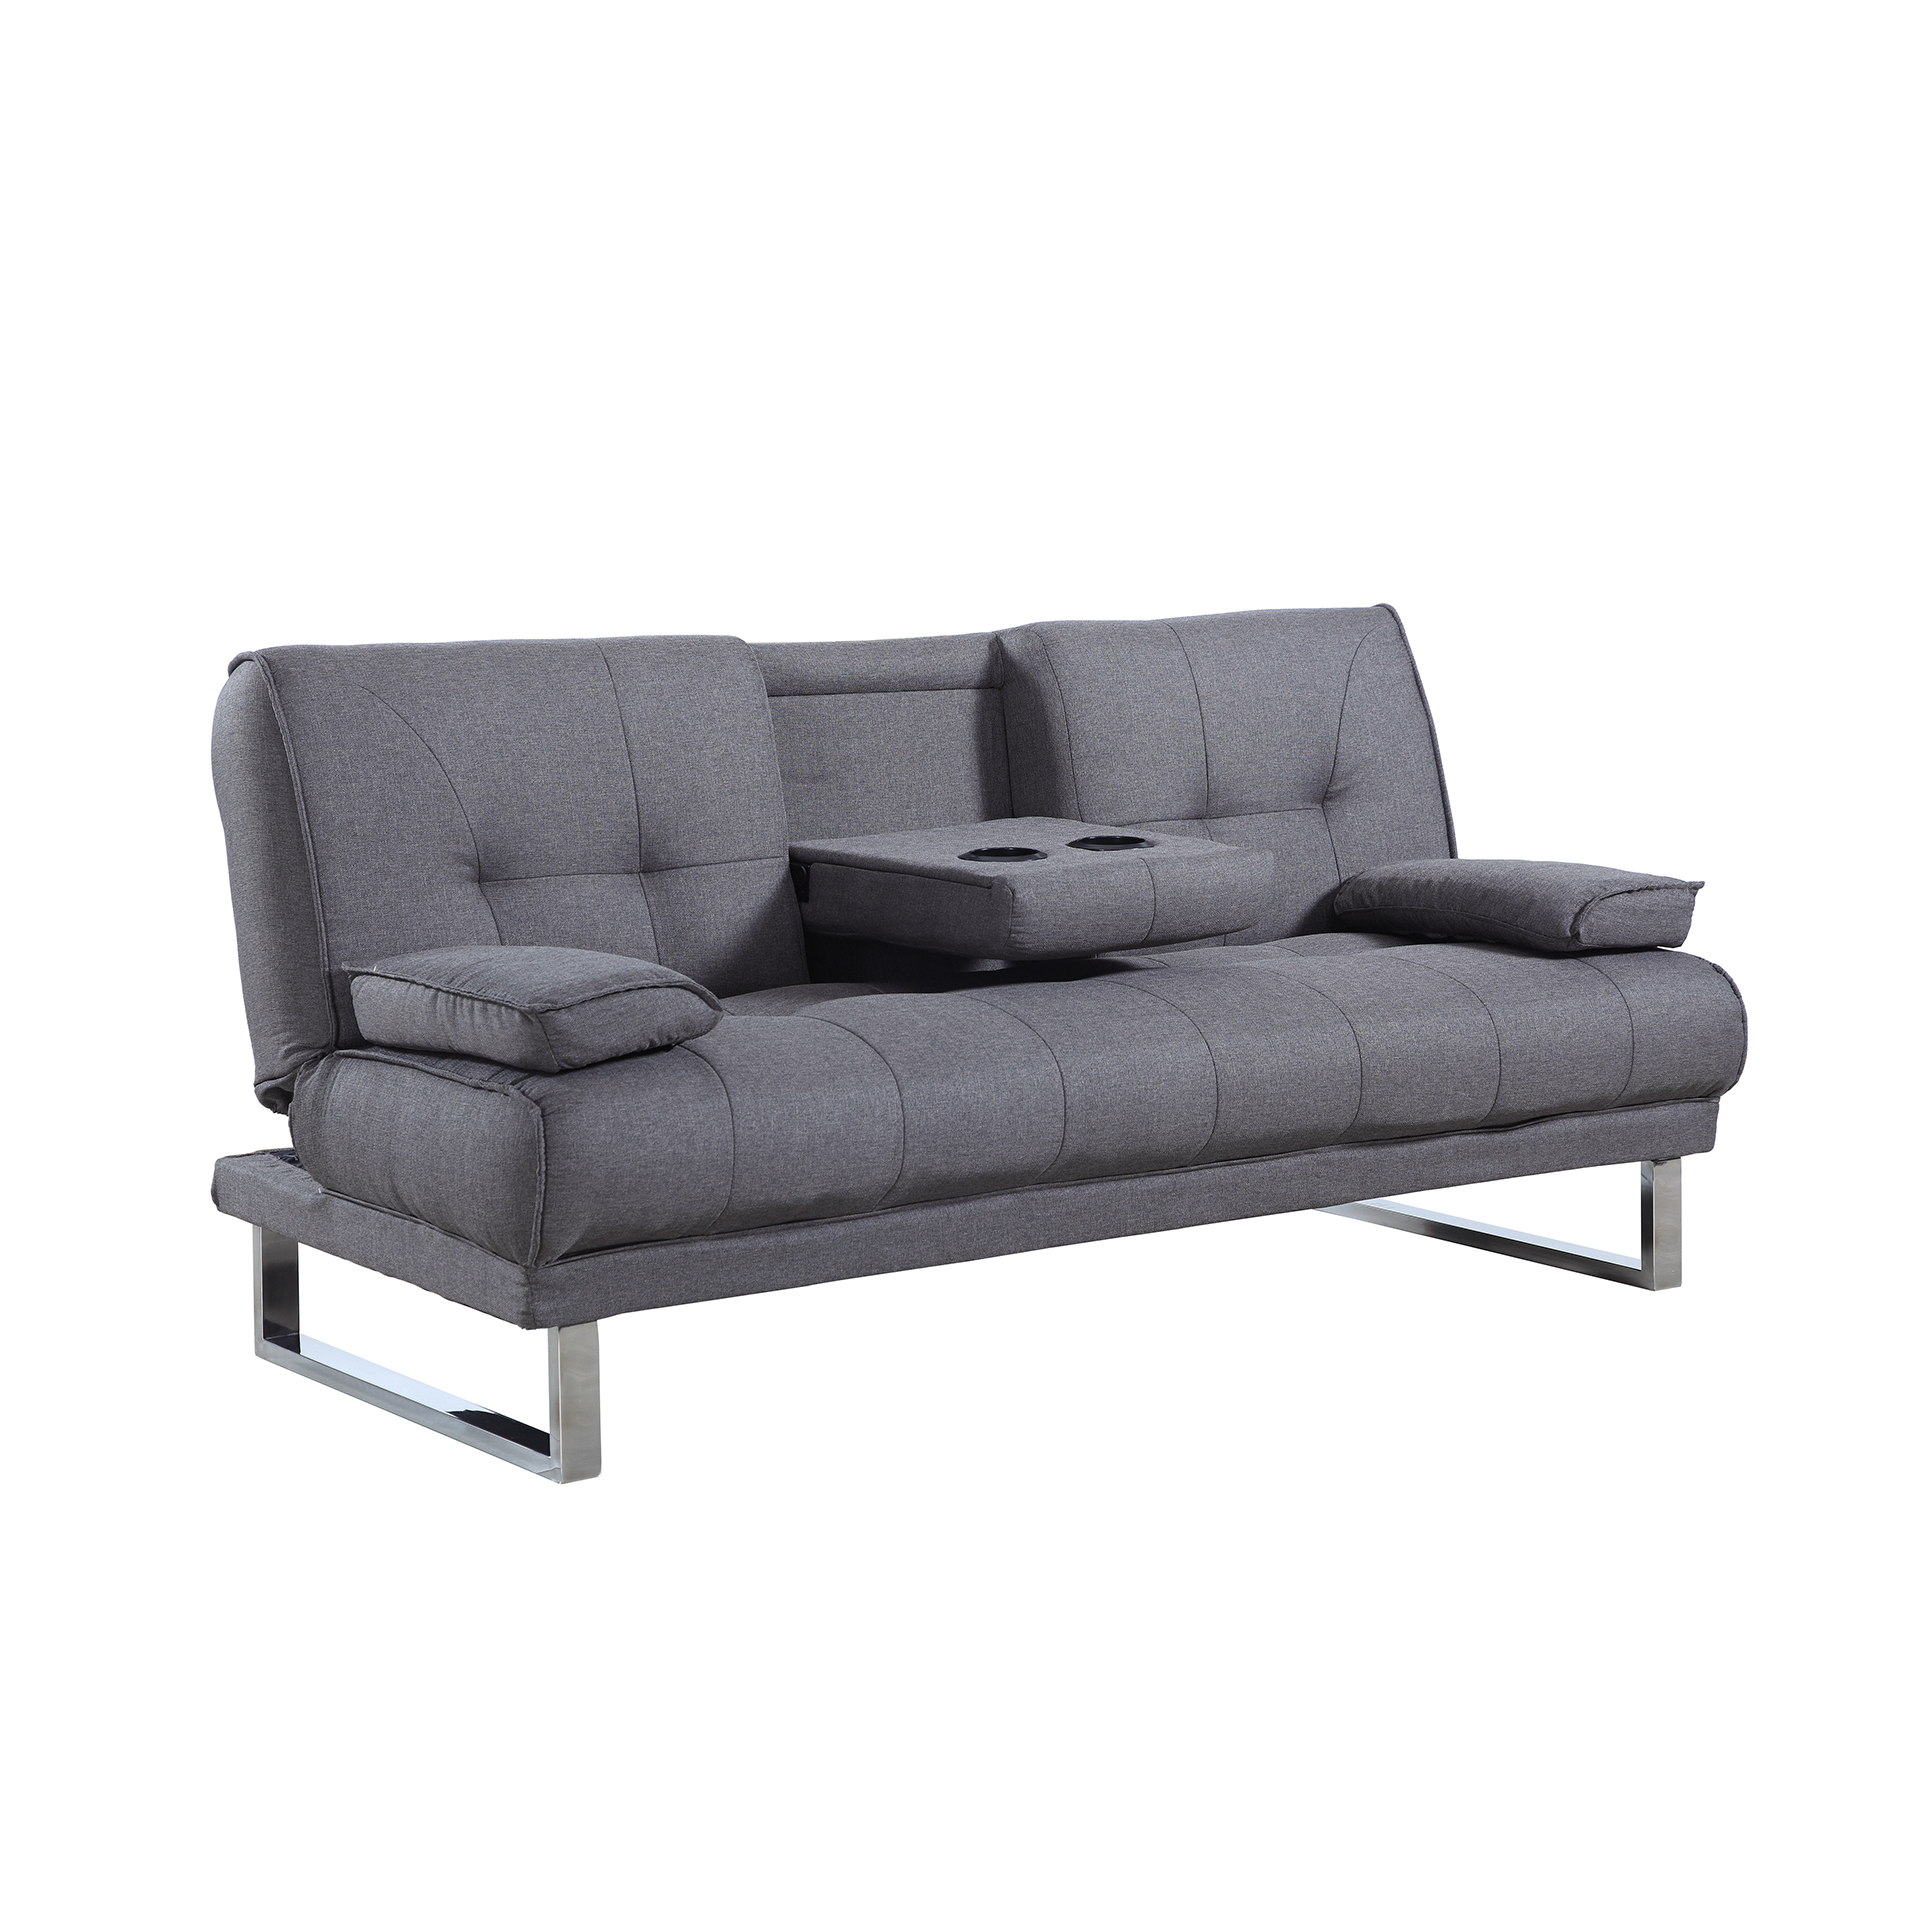 sofa armrest drink holder tight back sofas from ethan allen cheap bed furniture manila auntiemuriels